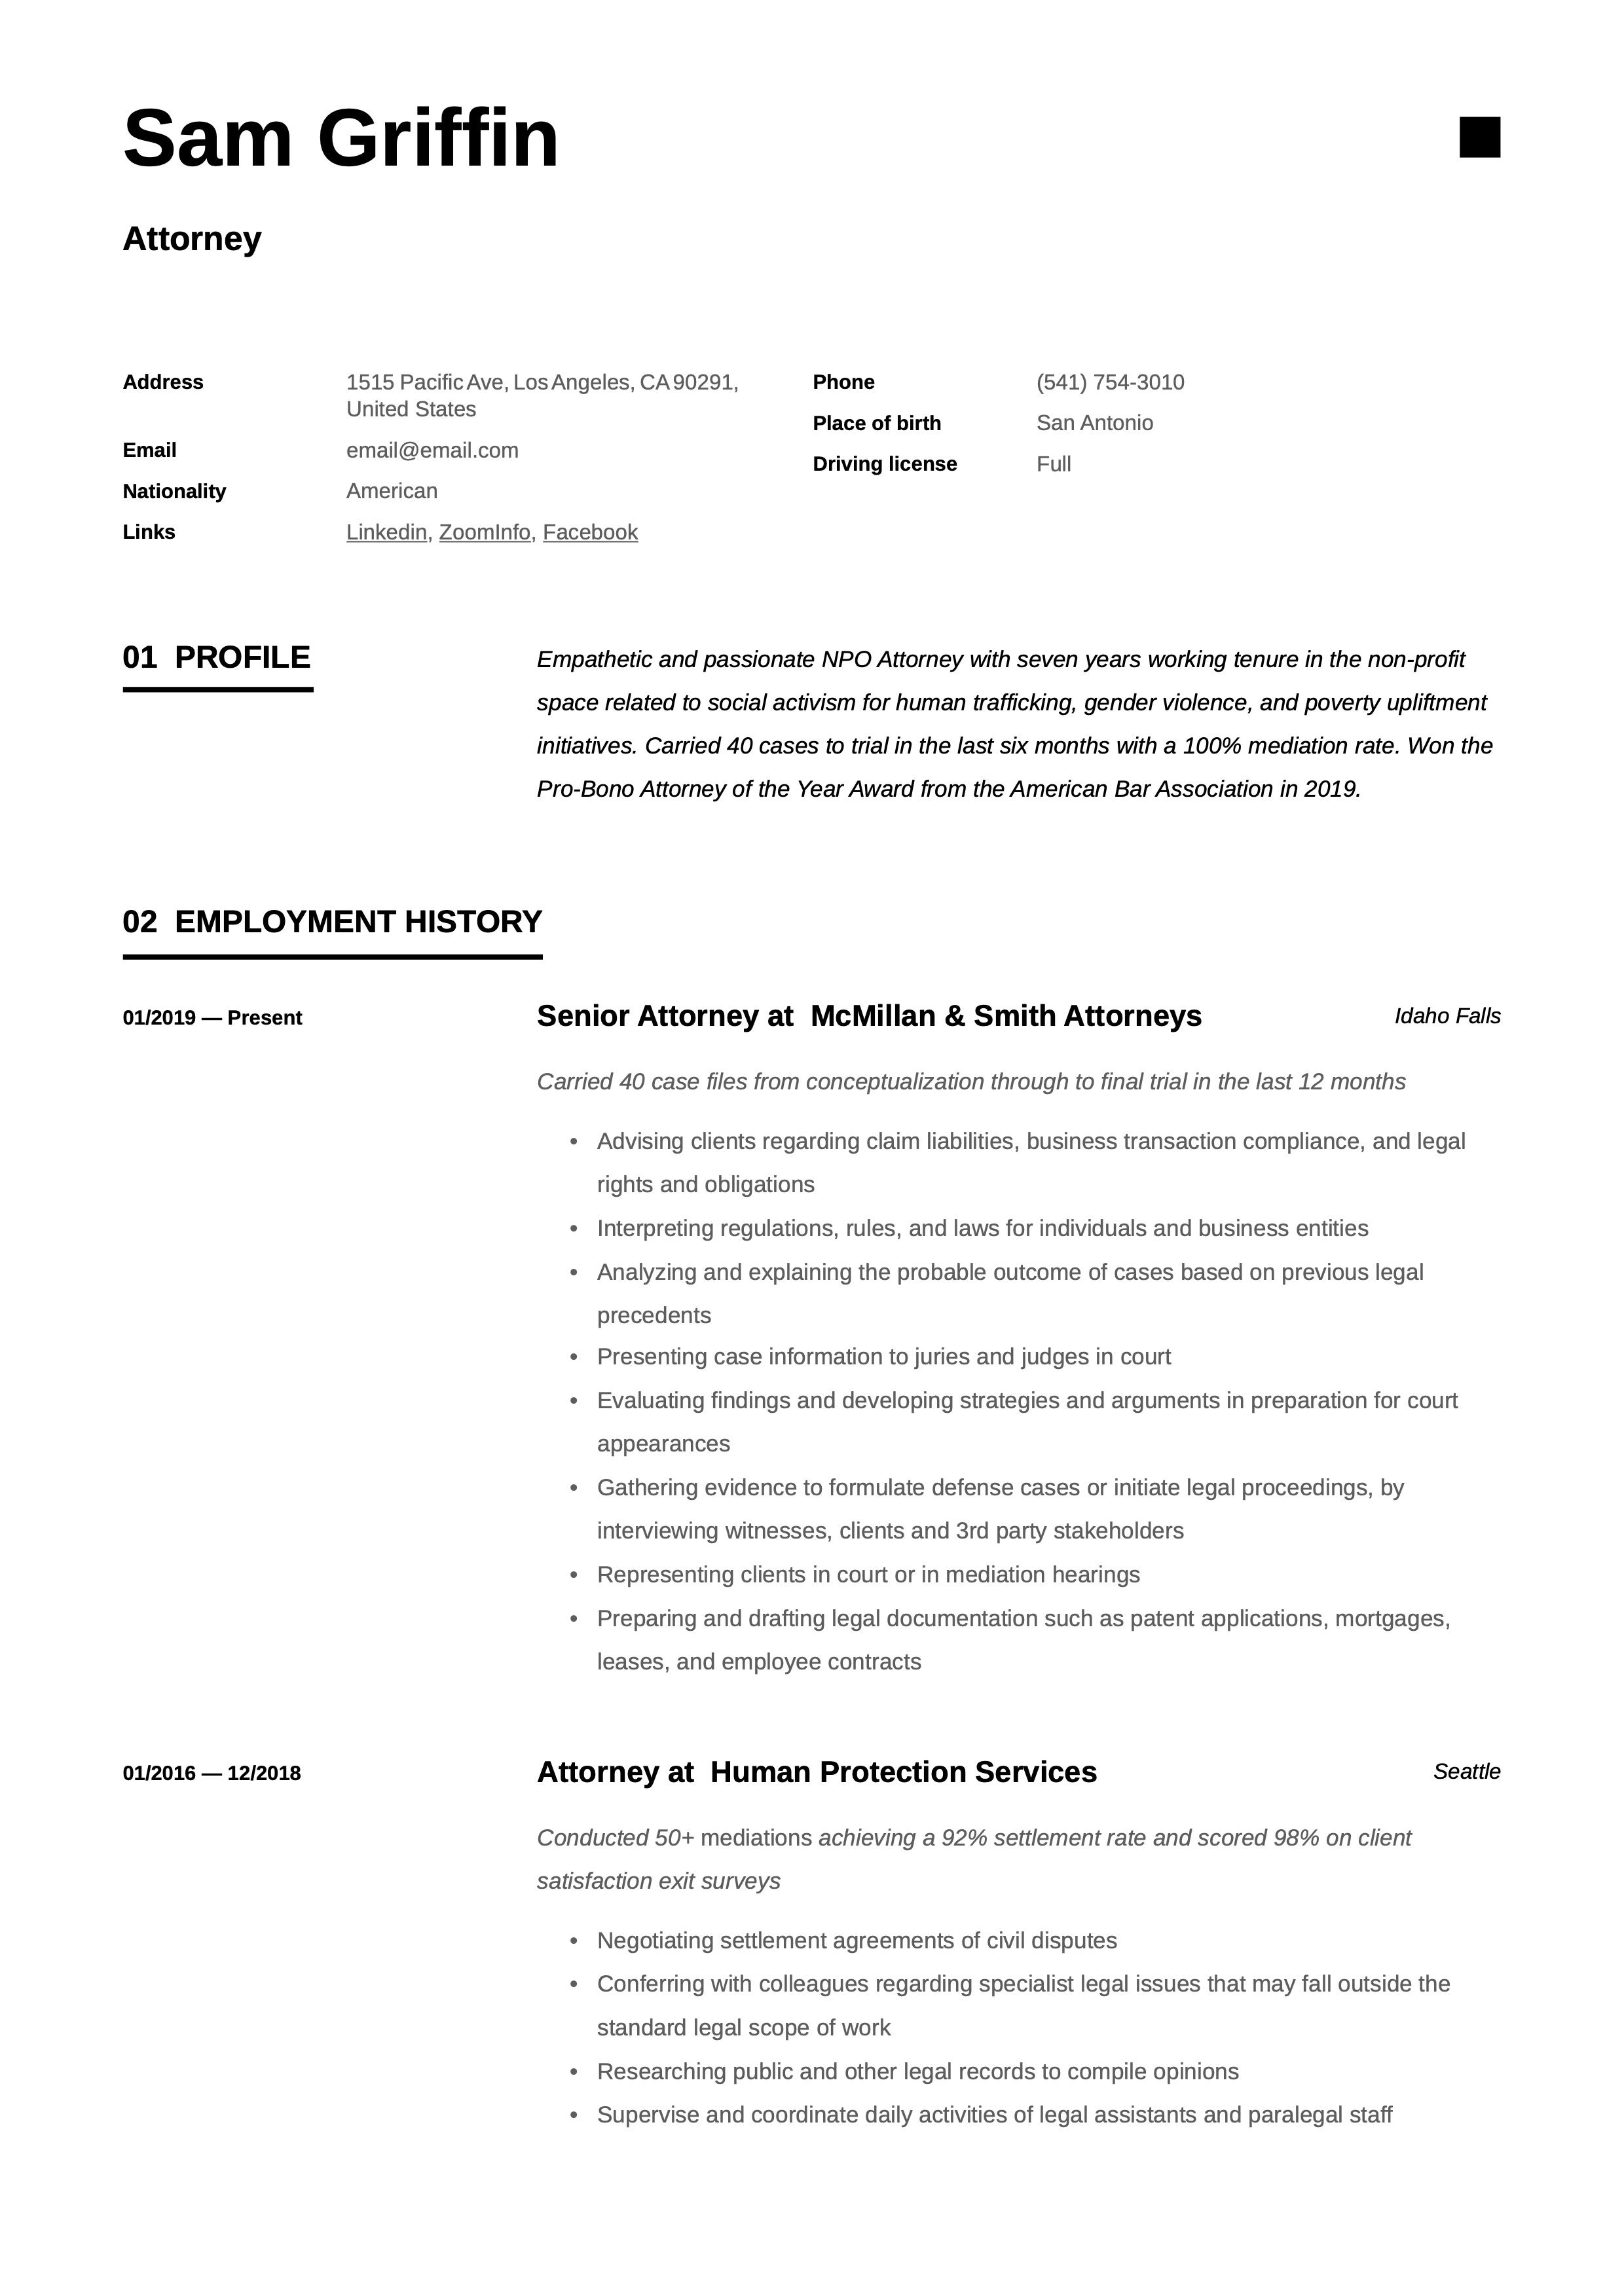 Attorney resume template in 2020 resume examples